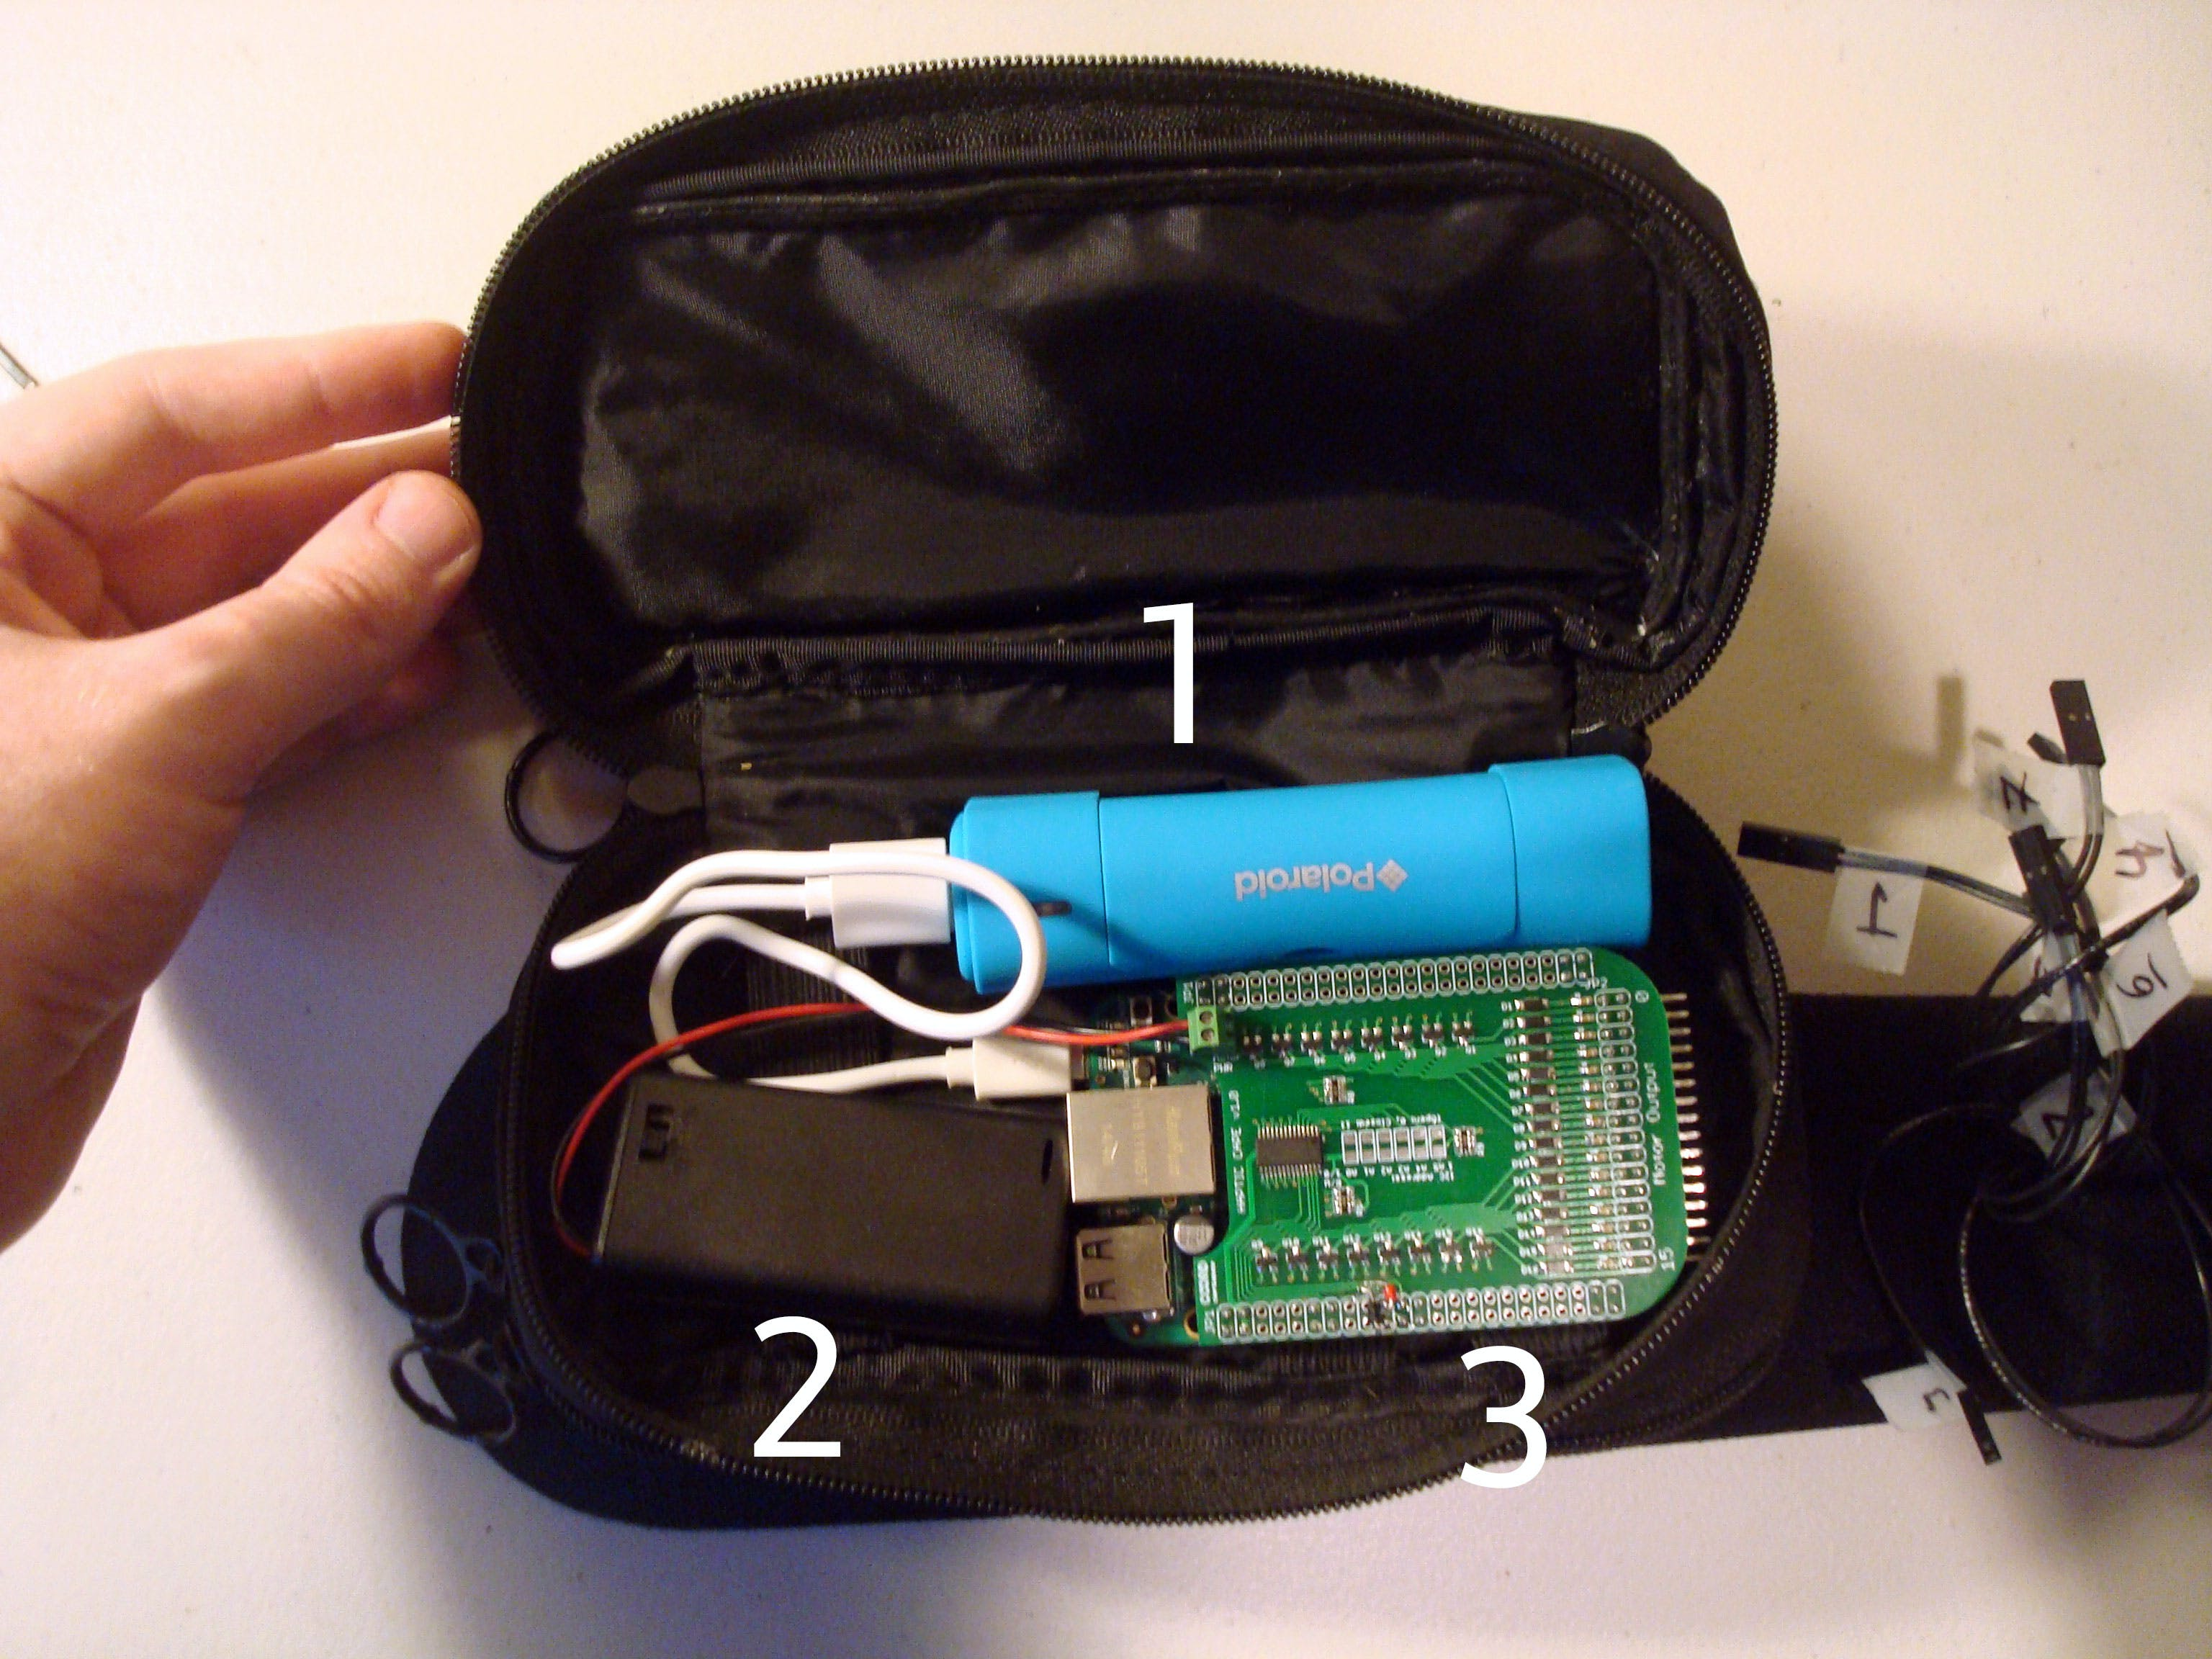 Now that the case and the belt are connected, it's time to load all the parts we need to run the Cape+BeagleBone off the grid. 1: Smartphone battery pack. 2. AA x 2 battery pack to power the tactors. 3: The BeagleBone with Haptic Cape attached.